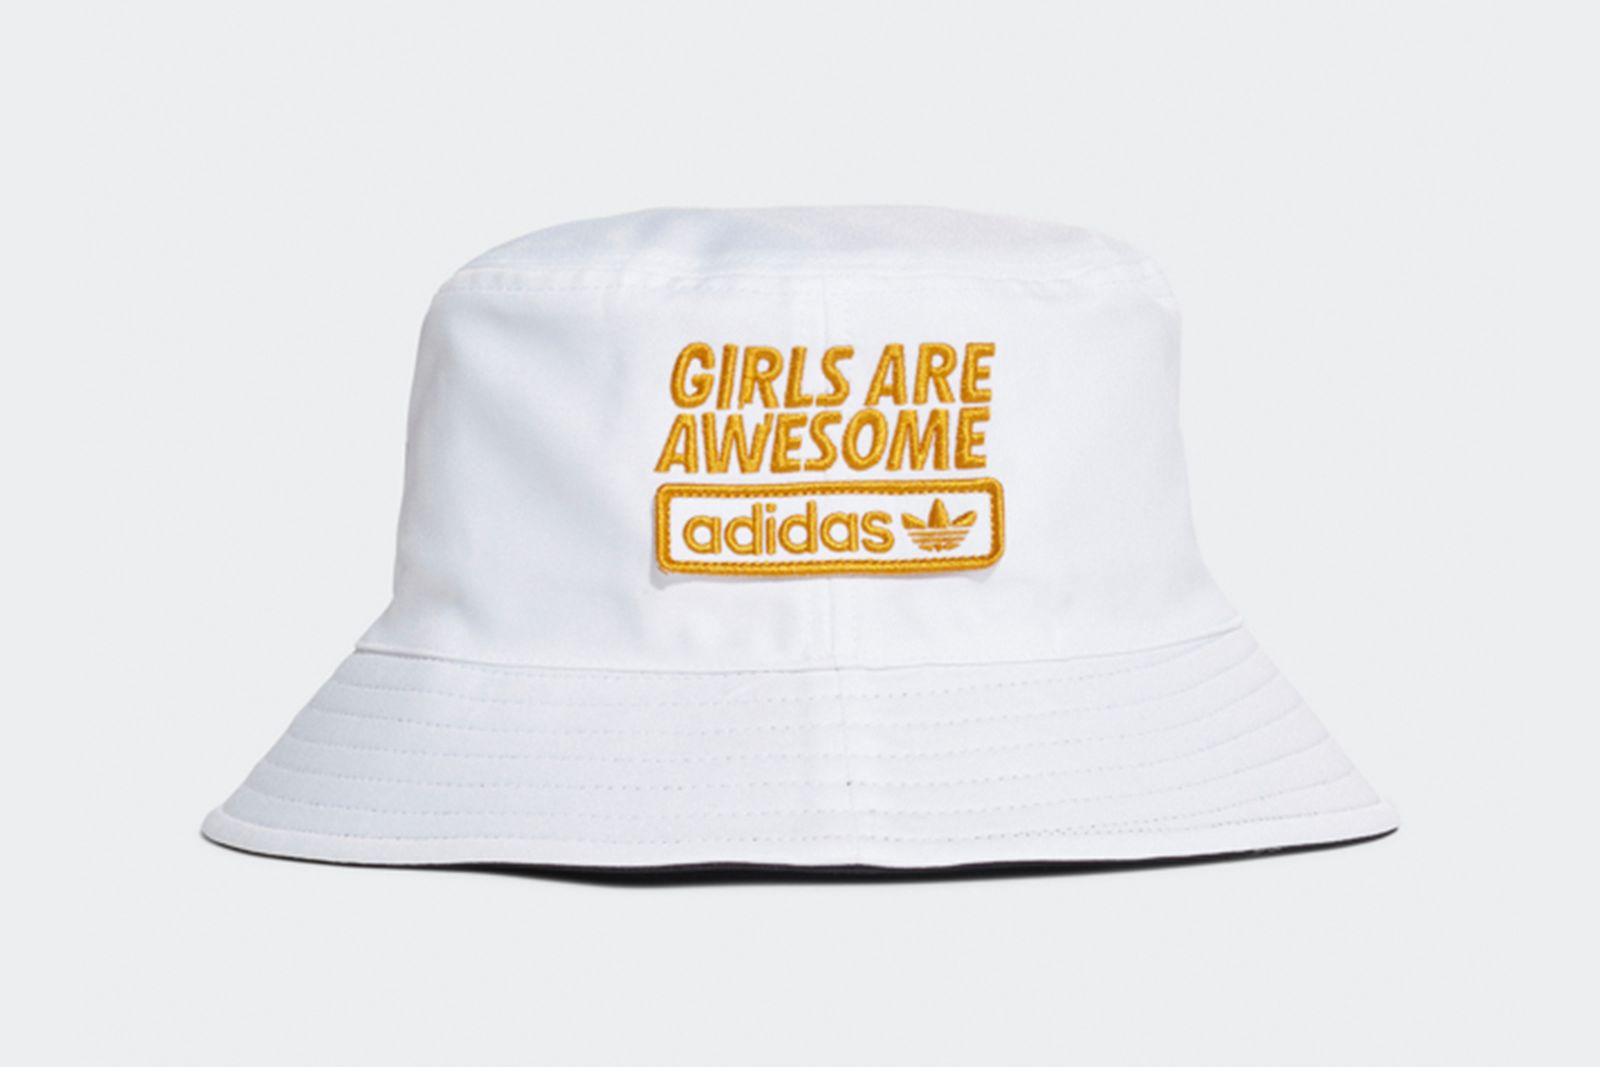 girls-are-awesome-adidas-originals-forum-release-date-price-prdct-05